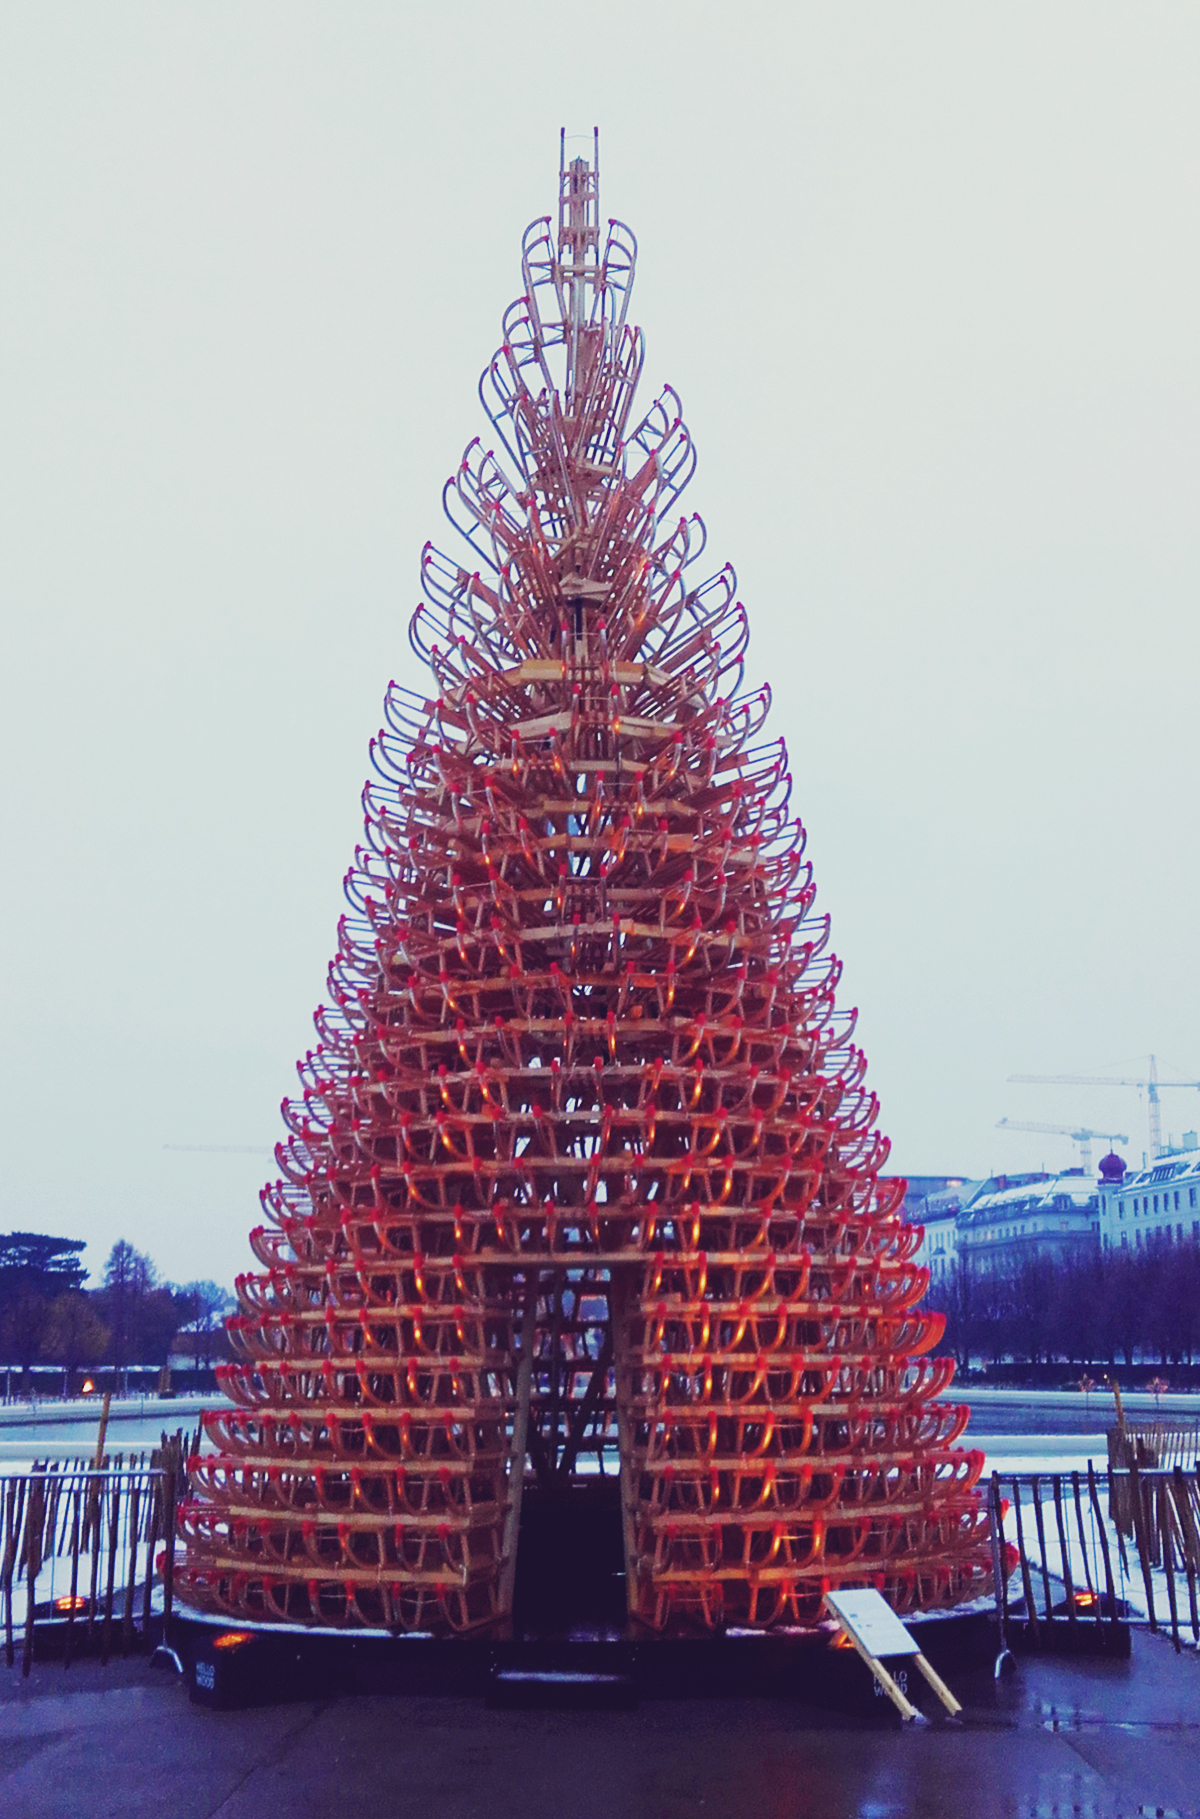 Vienna Christmas Market, creative Christmas tree made out of wood sleighs